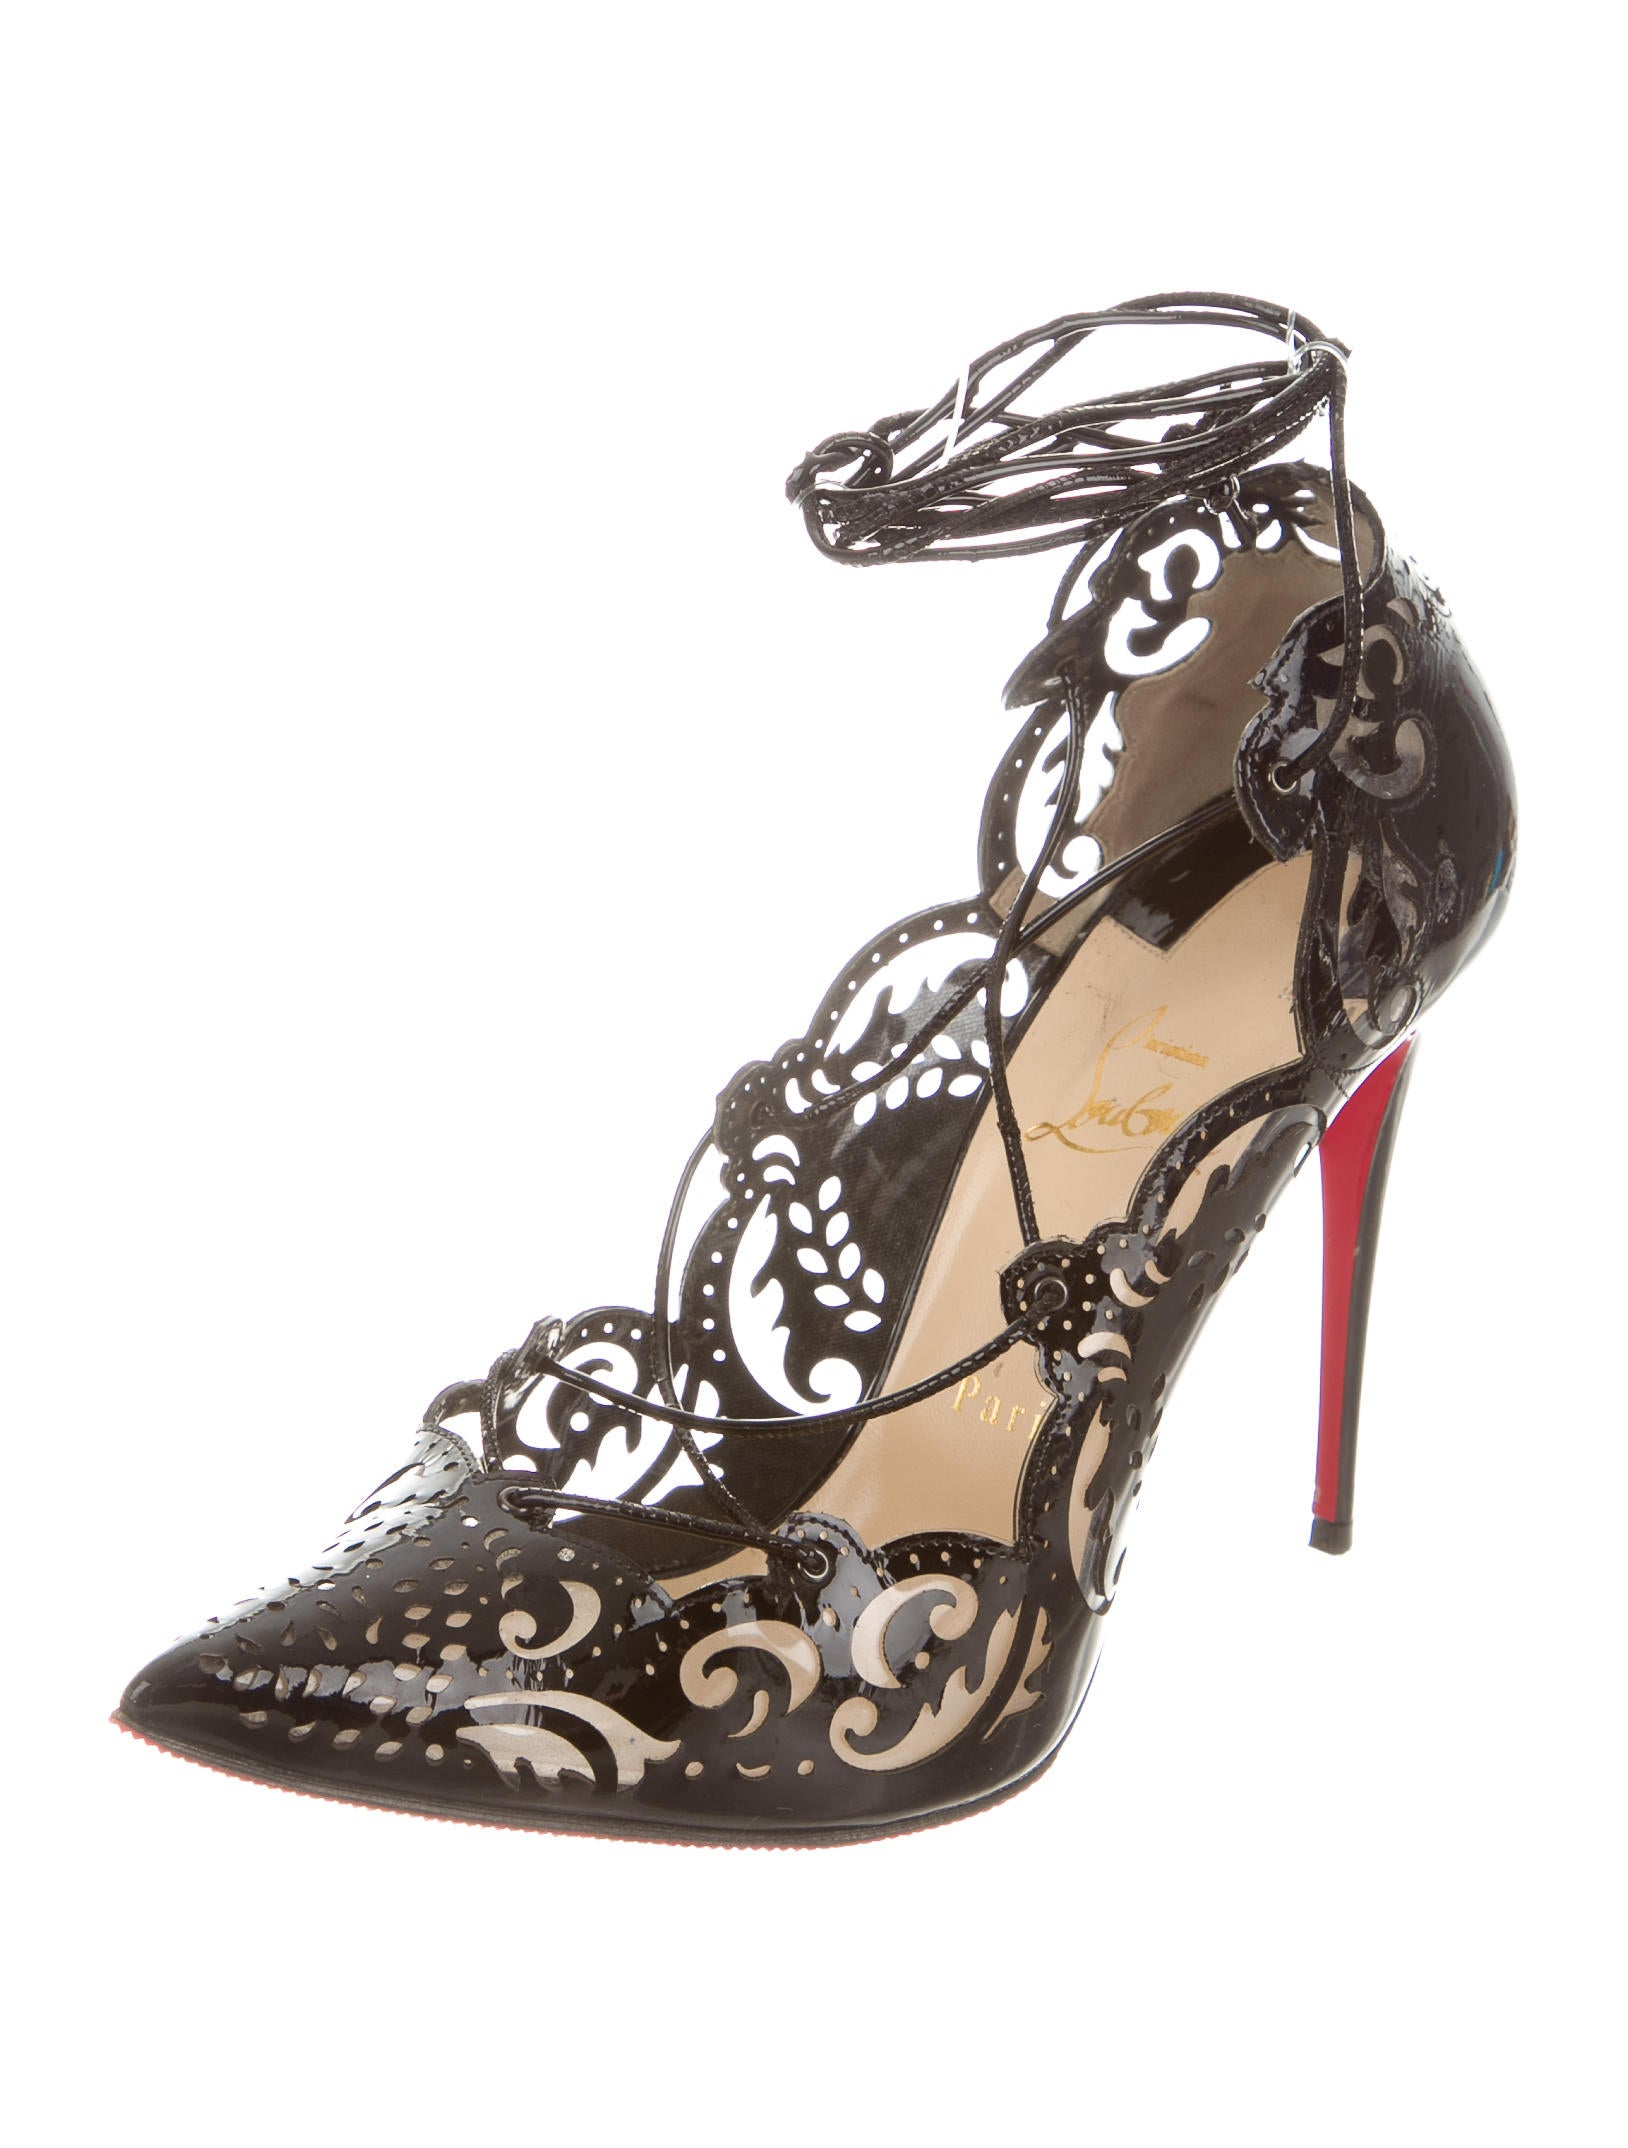 cheap price outlet sale top quality sale online Christian Louboutin Impera 120 Laser Cut Pumps how much cheap price discount popular QhCB0